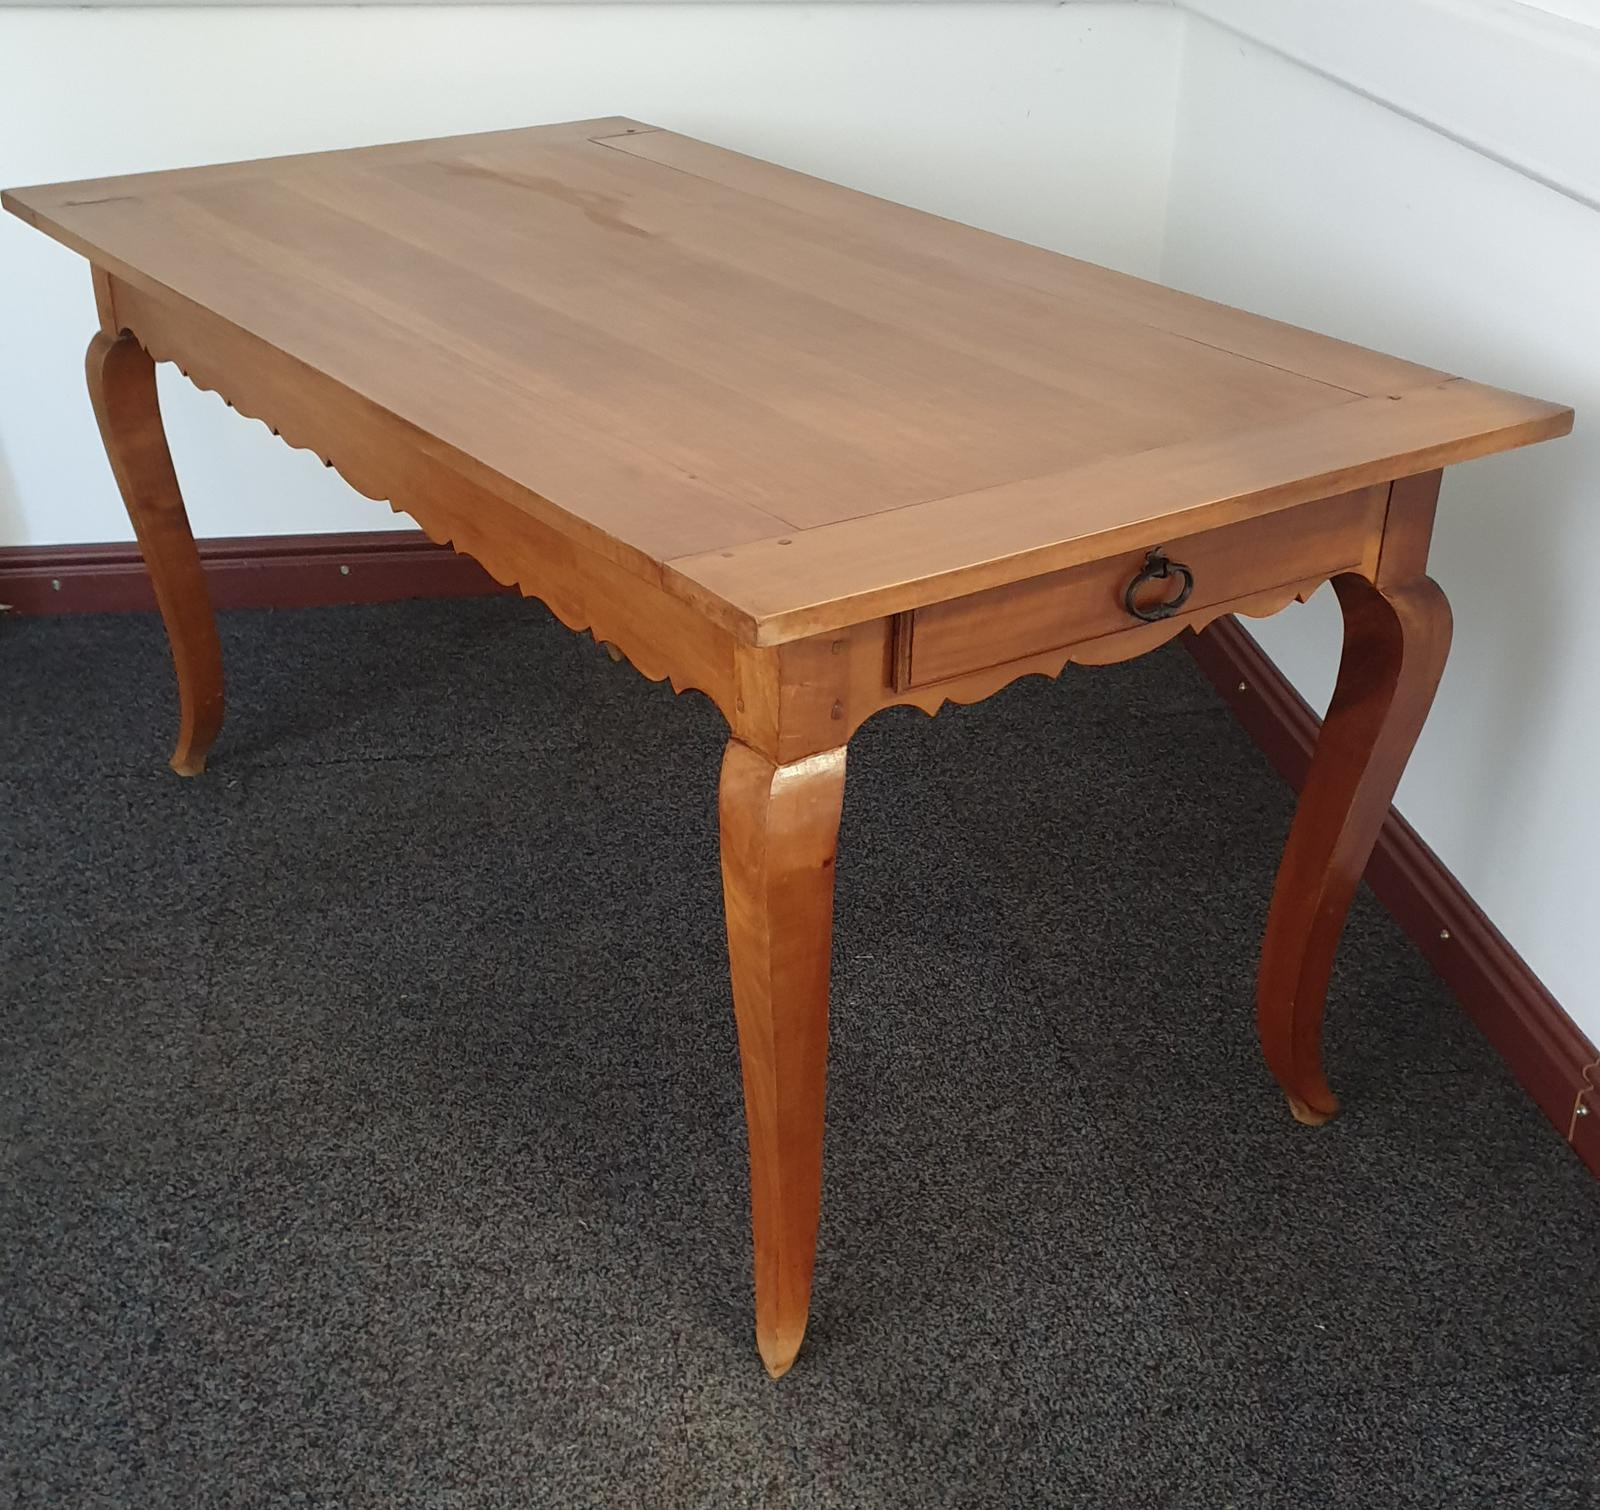 French Cherry Farmhouse Kitchen Refrectory Dining Table (1 of 1)